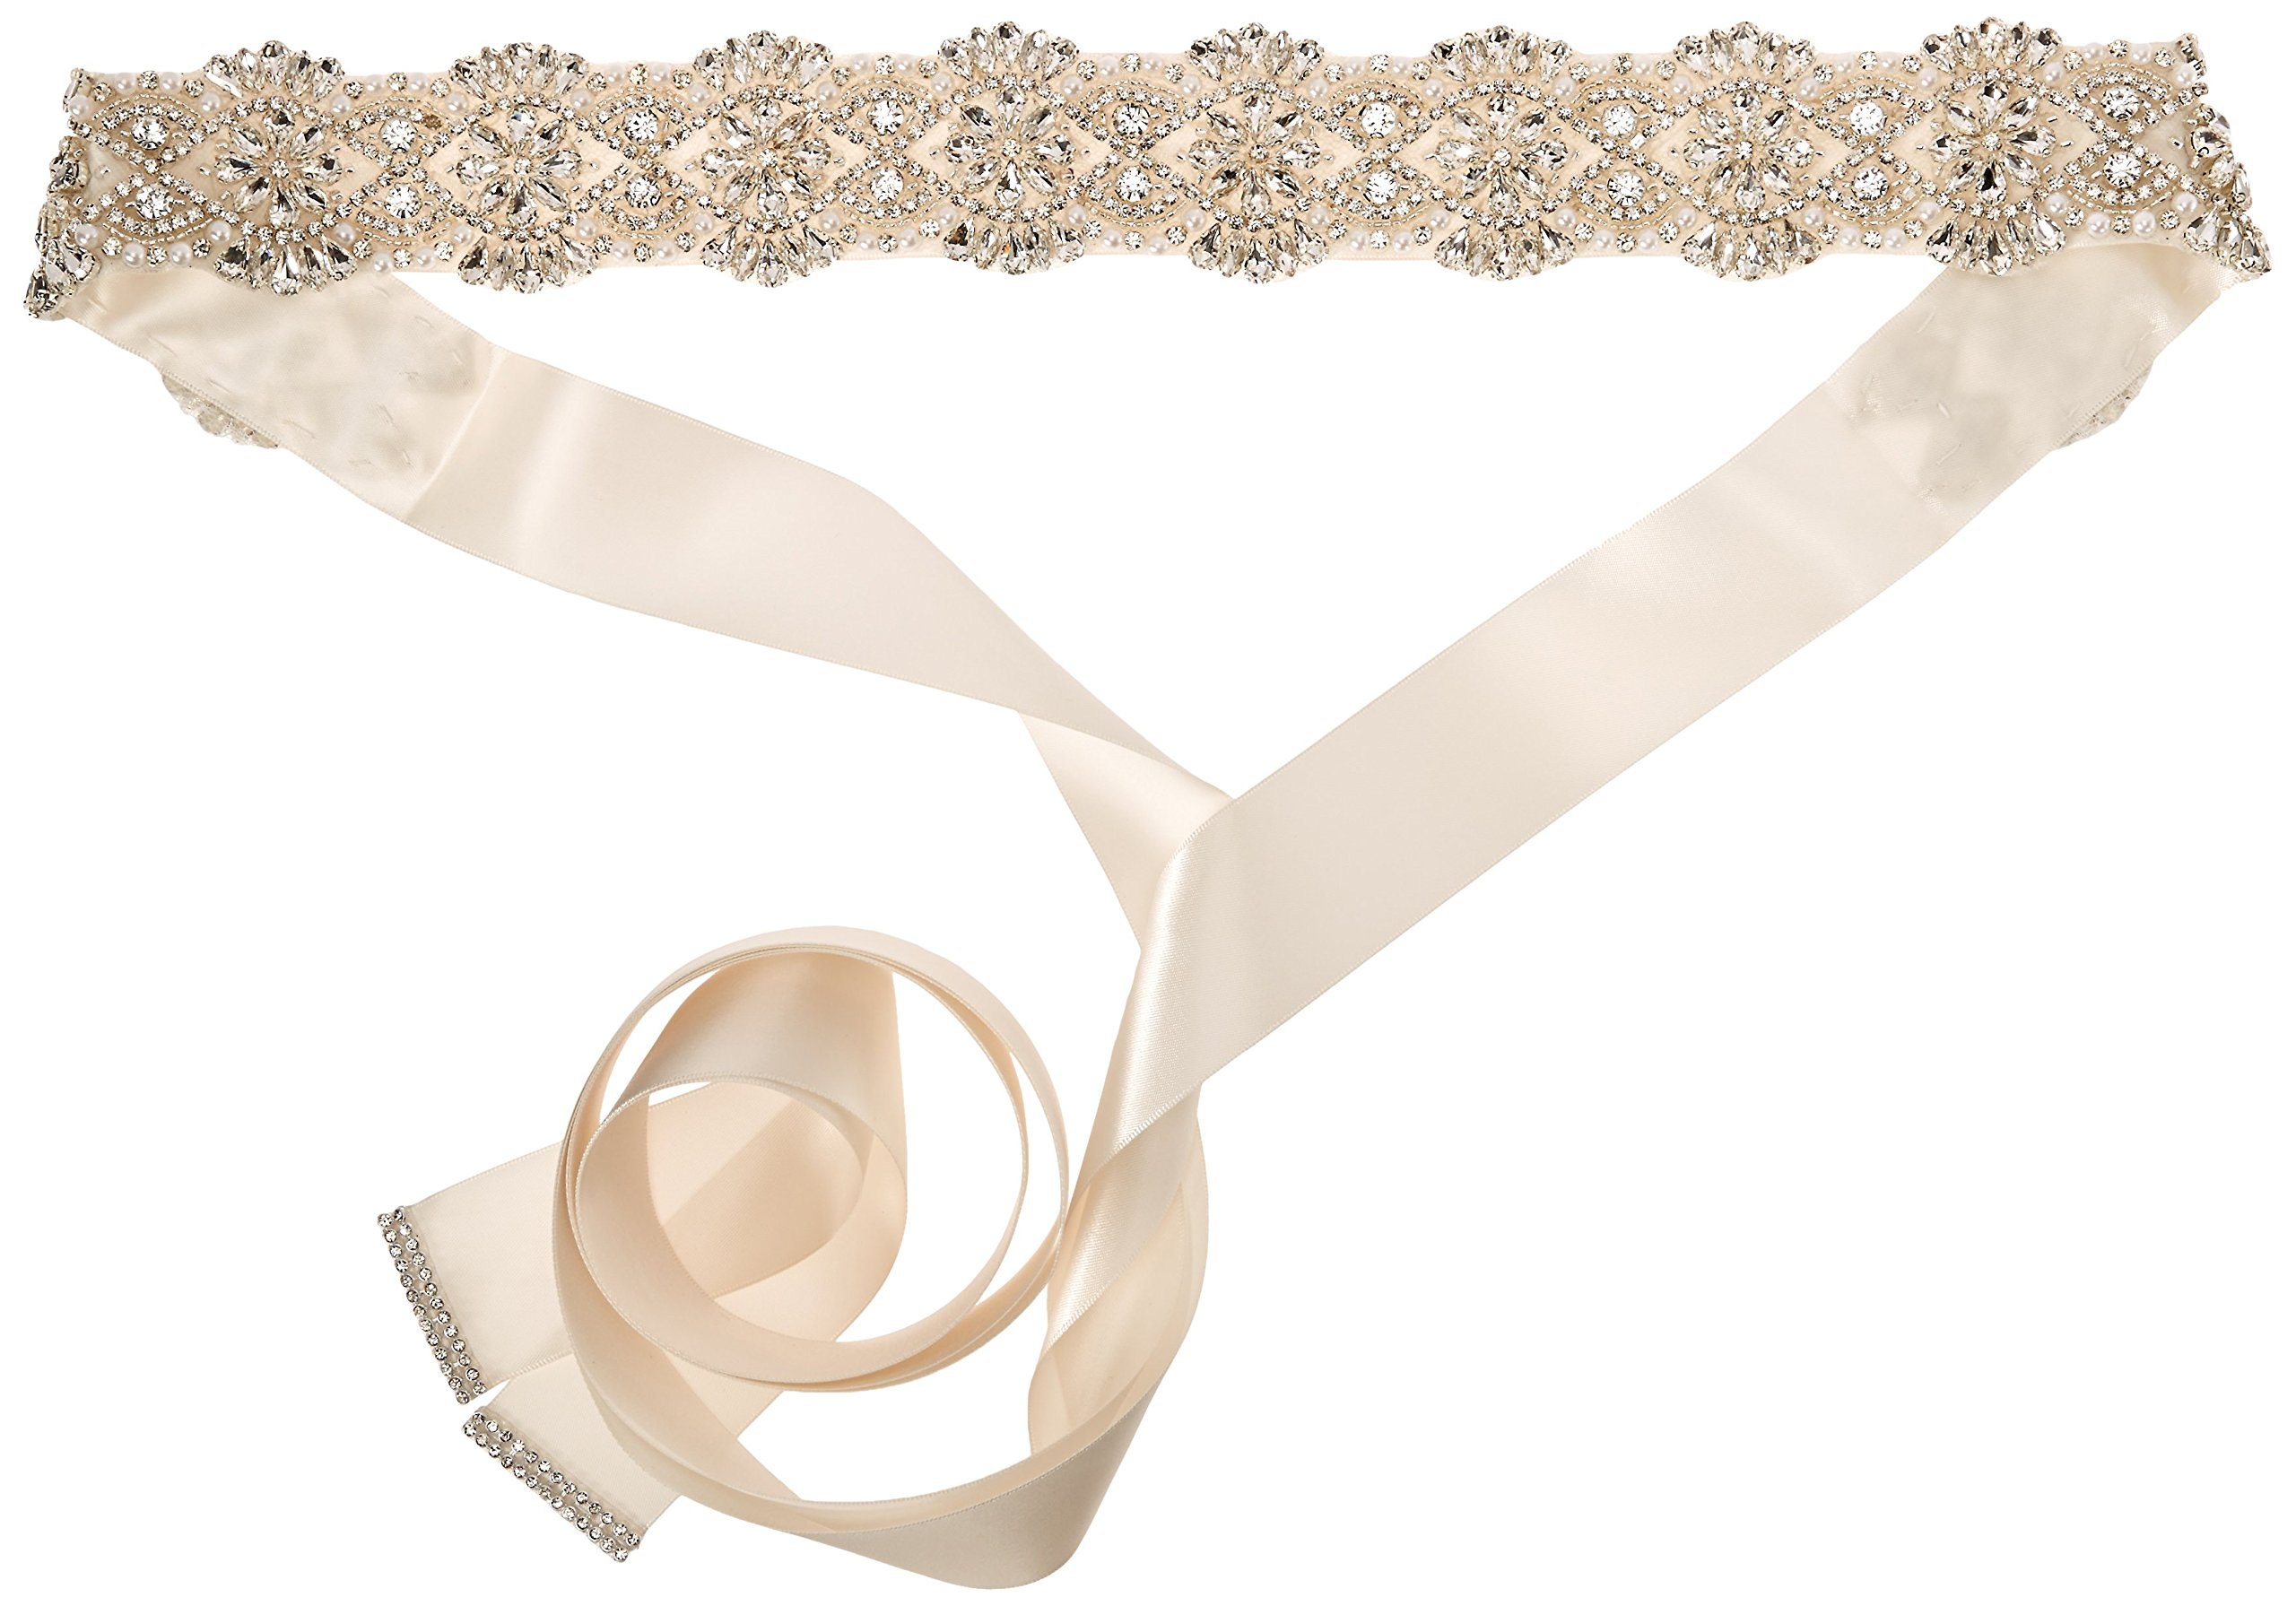 Nina Women's Merina Glamorous Pearl and Crystal Satin Bridal Belt, Ivory, One Size by Nina